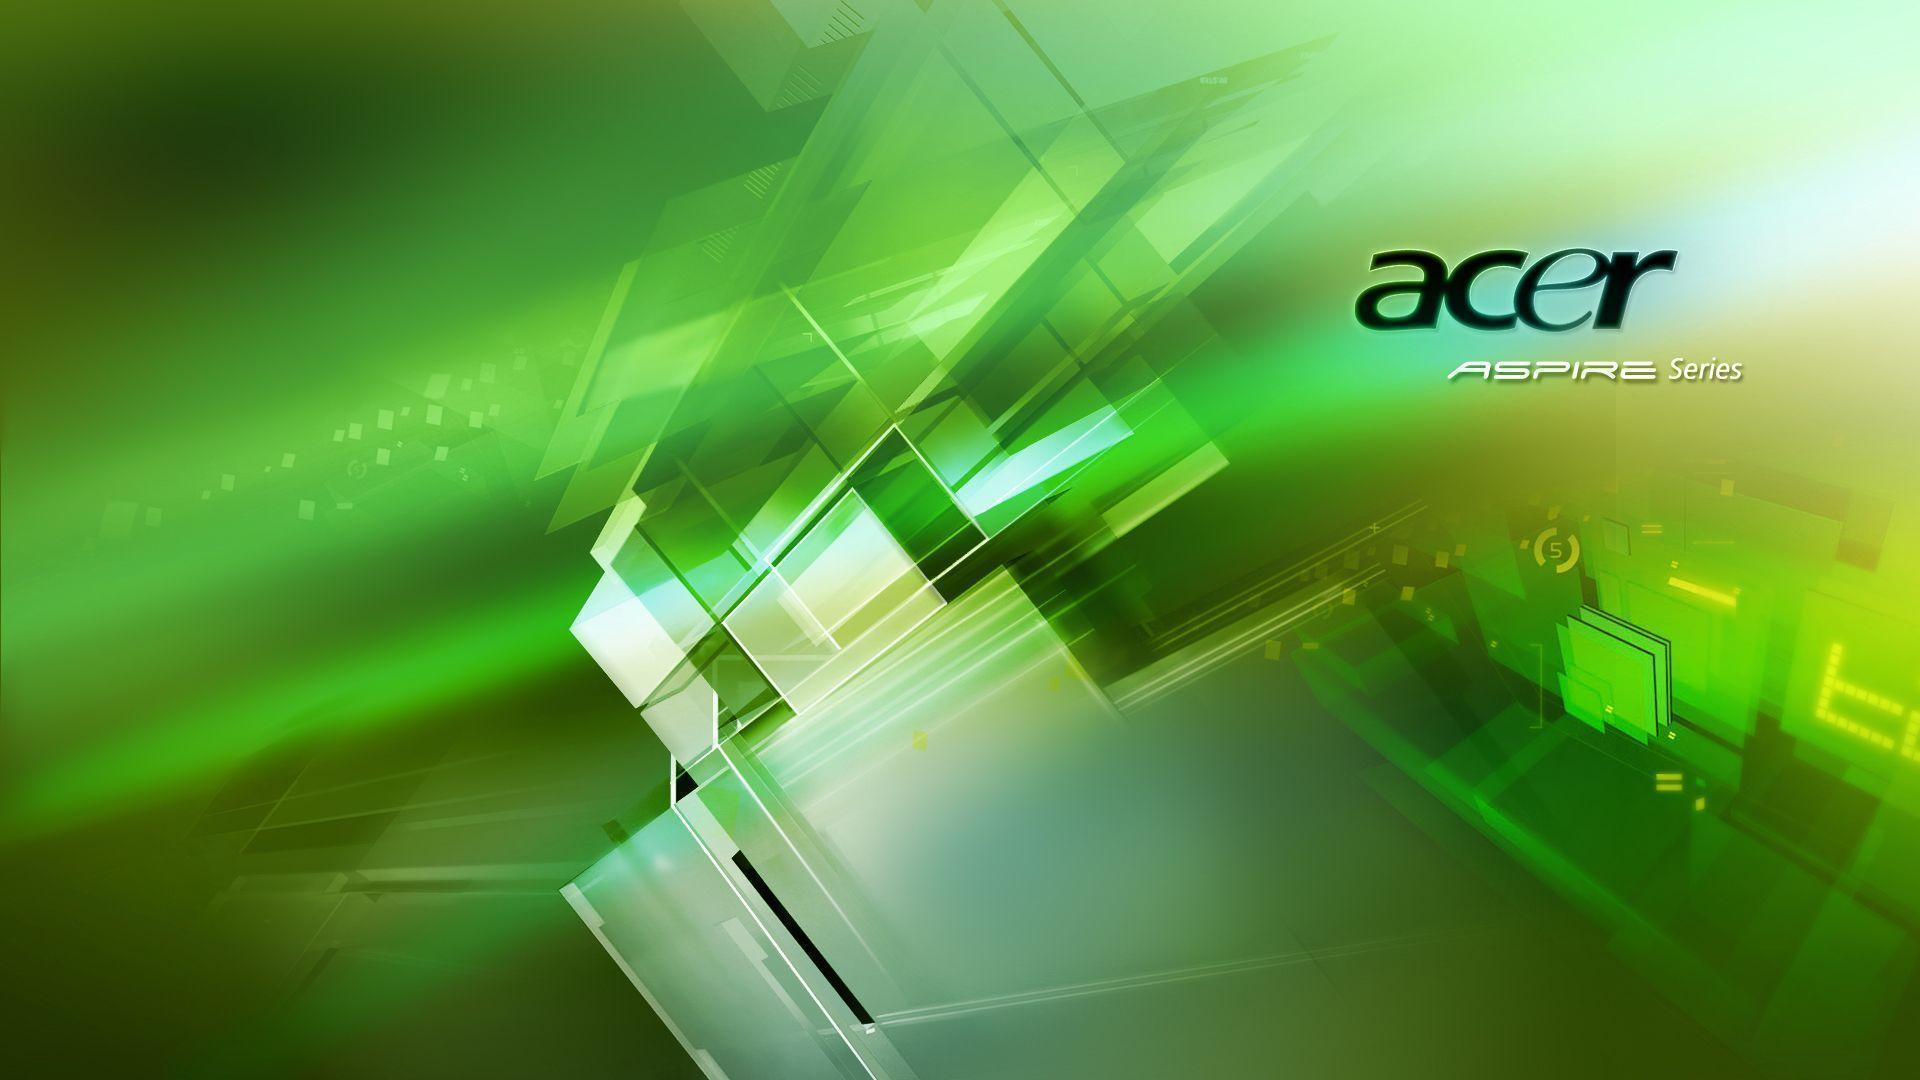 Image For > Acer Wallpapers Green